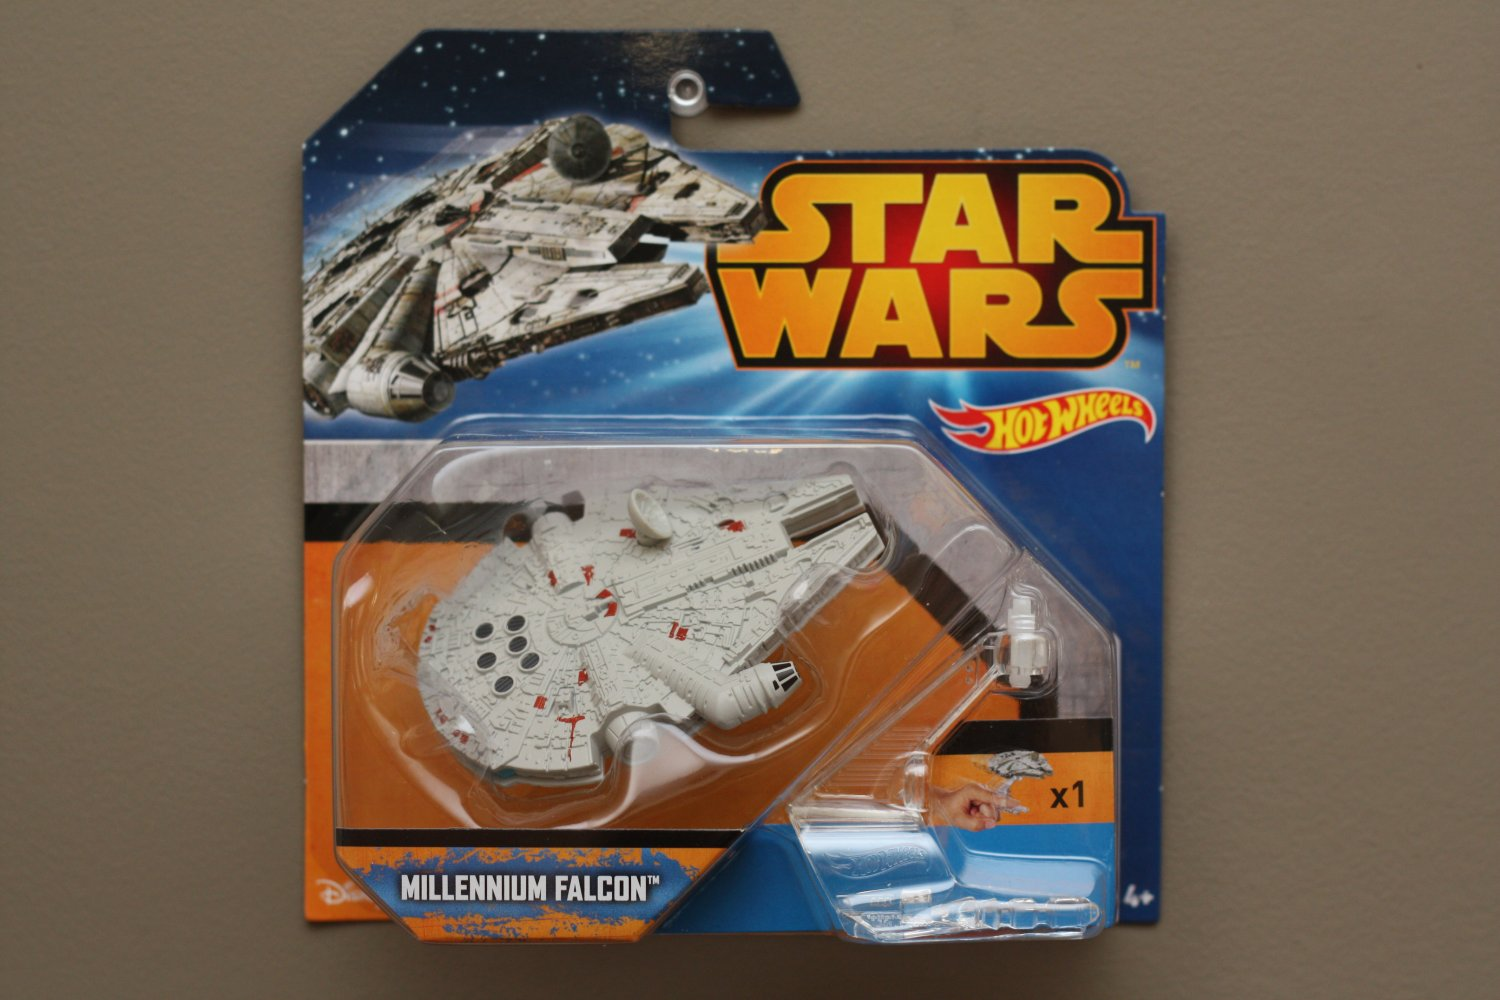 Hot Wheels 2015 Star Wars Ships Millennium Falcon (Original Trilogy)